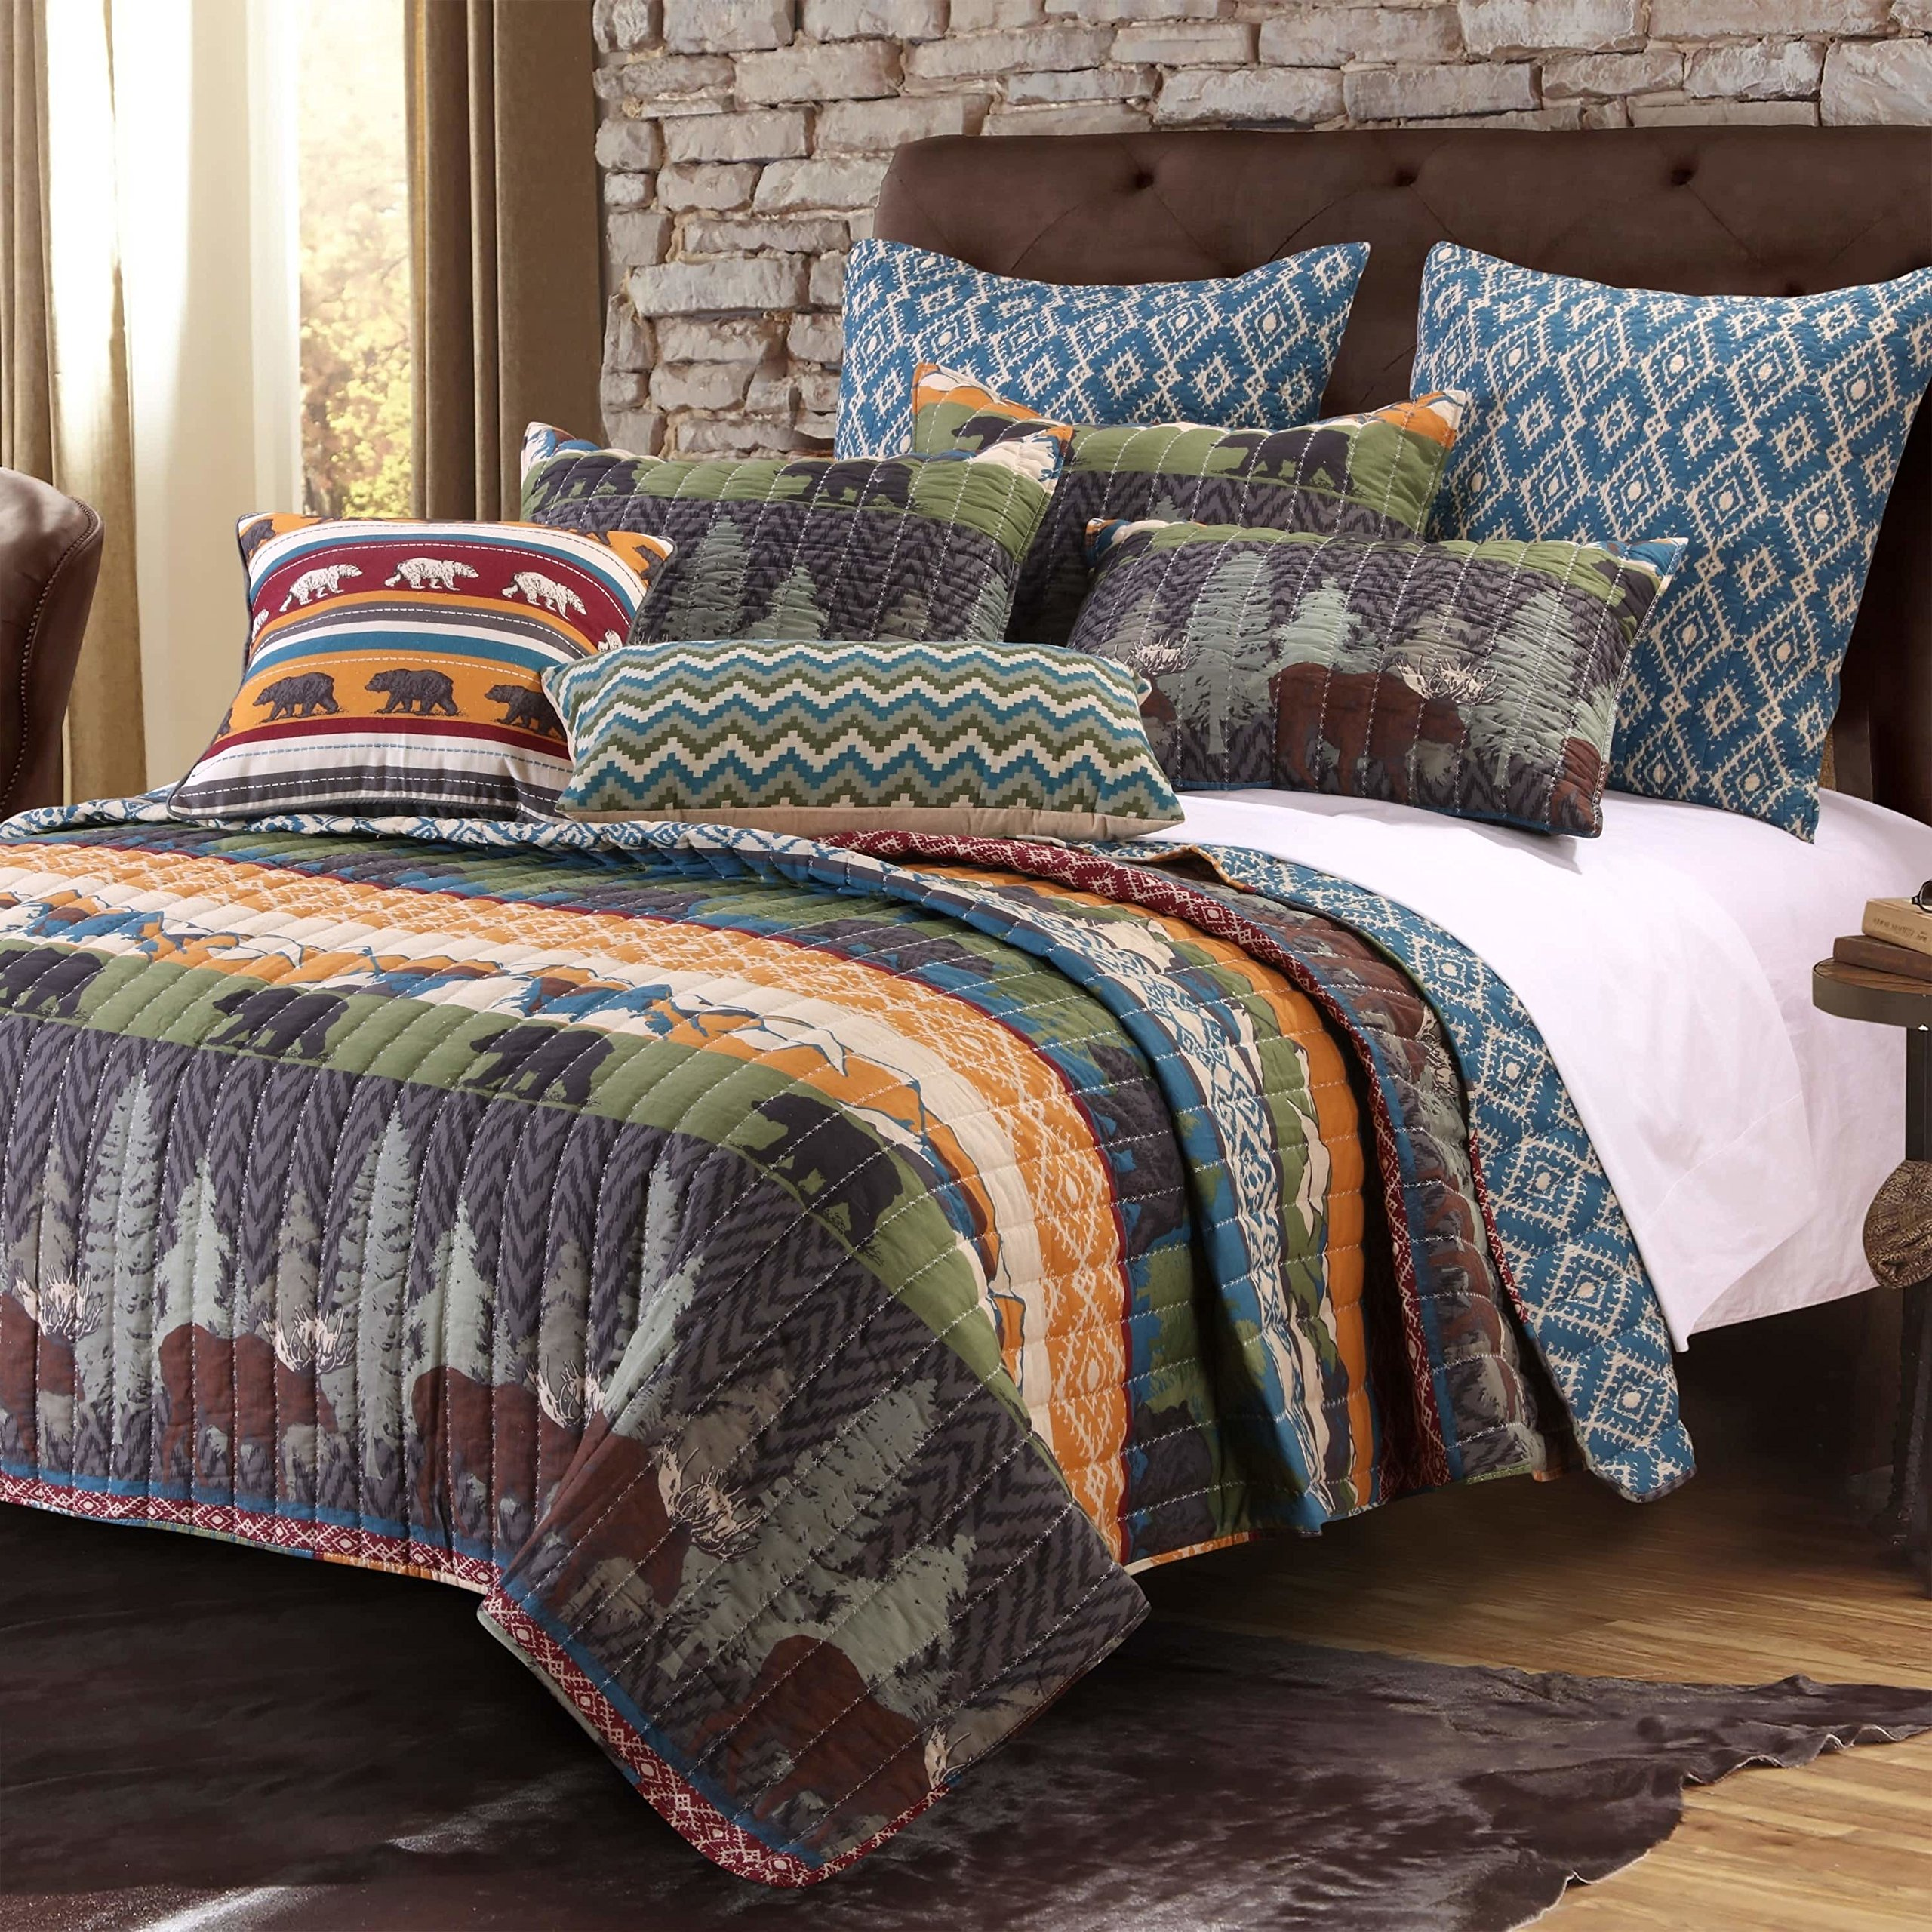 3 Piece Brown Lodge Theme Full Queen Quilt Set, Rustic Animal Print Hunting Country Southwest Pine Trees Cabin Bedding Woods Horizontal Stripes Medallion Geometric Pattern, Cotton Polyester